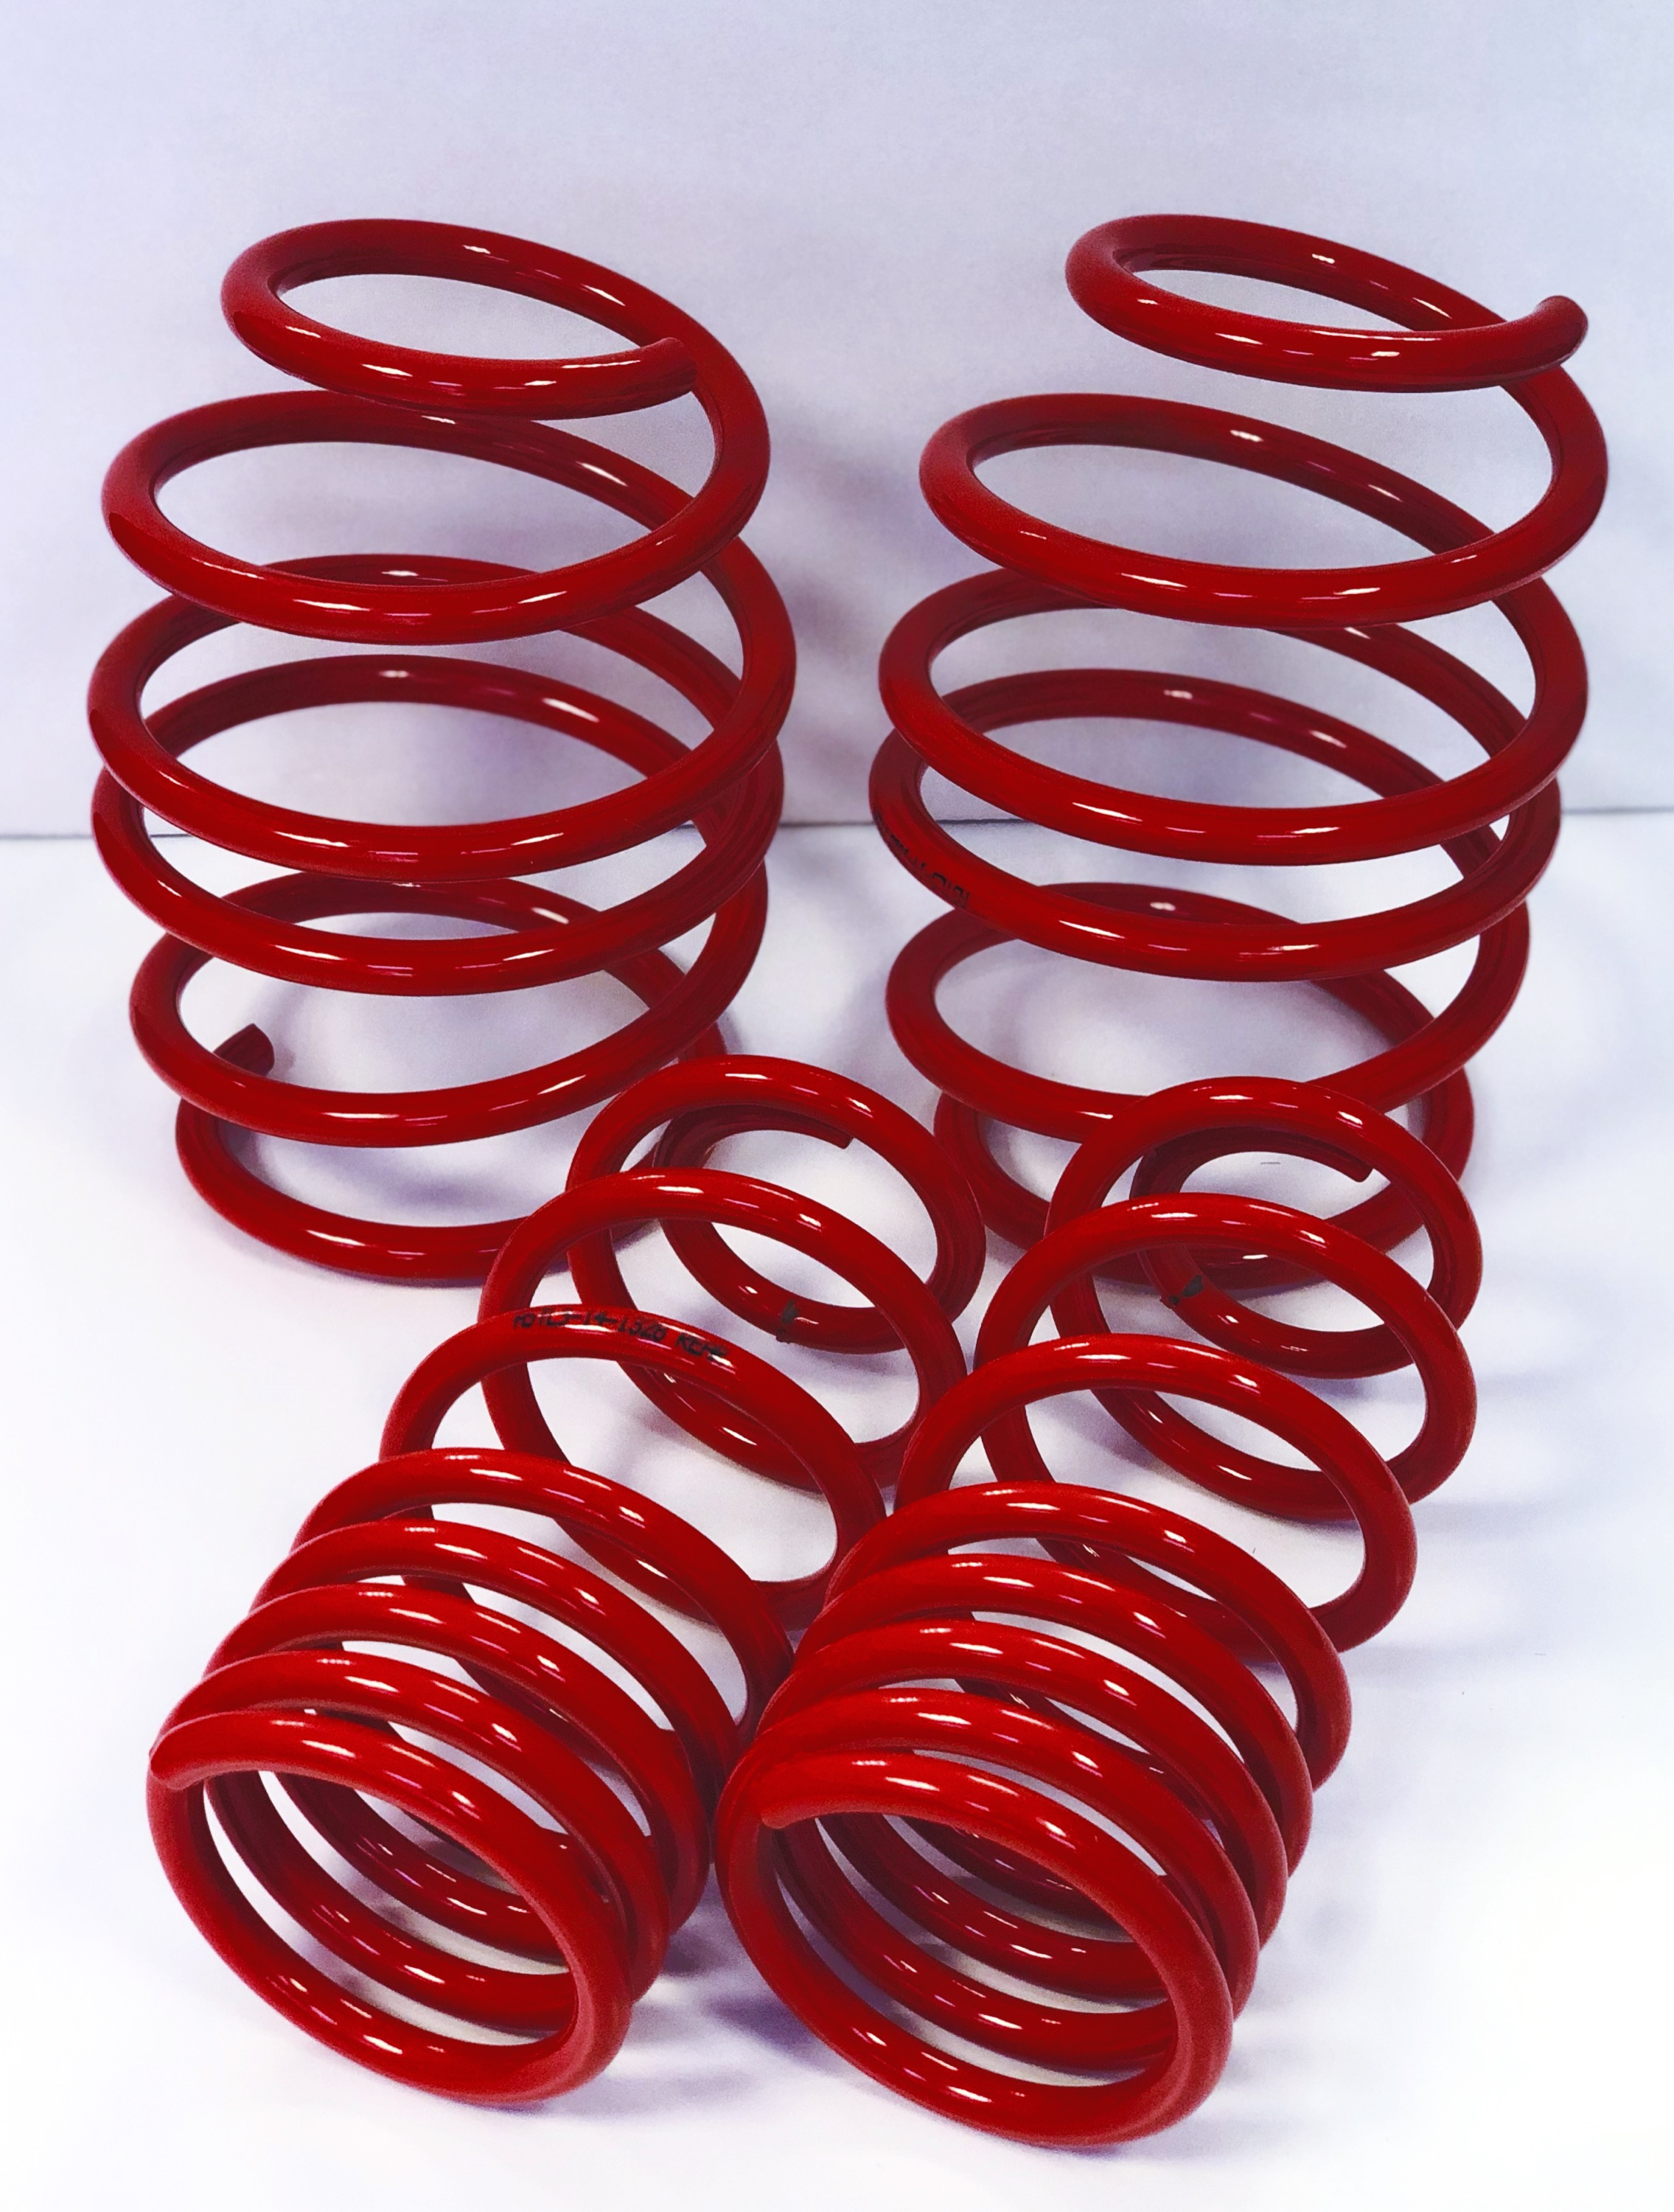 Renault MEGANE AST Suspension Lowering Springs 45MM